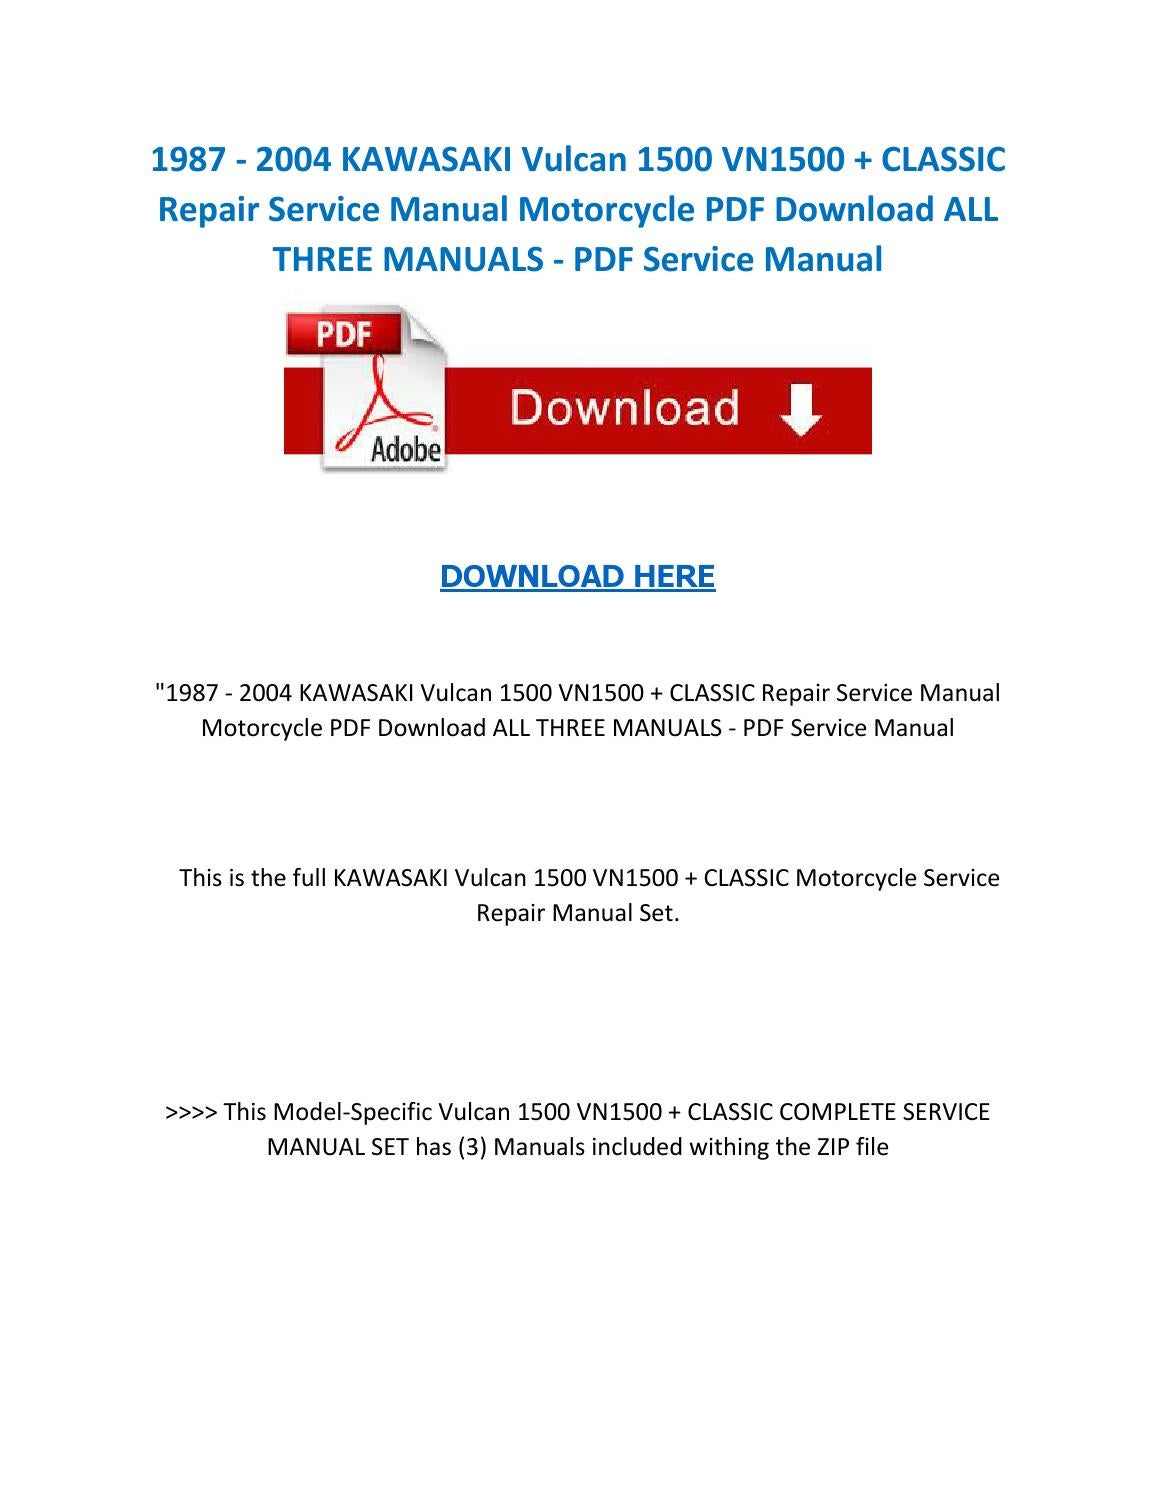 1987 2004 kawasaki vulcan 1500 vn1500 classic repair service manual  motorcycle pdf download all thre by ServiceManuals - issuu